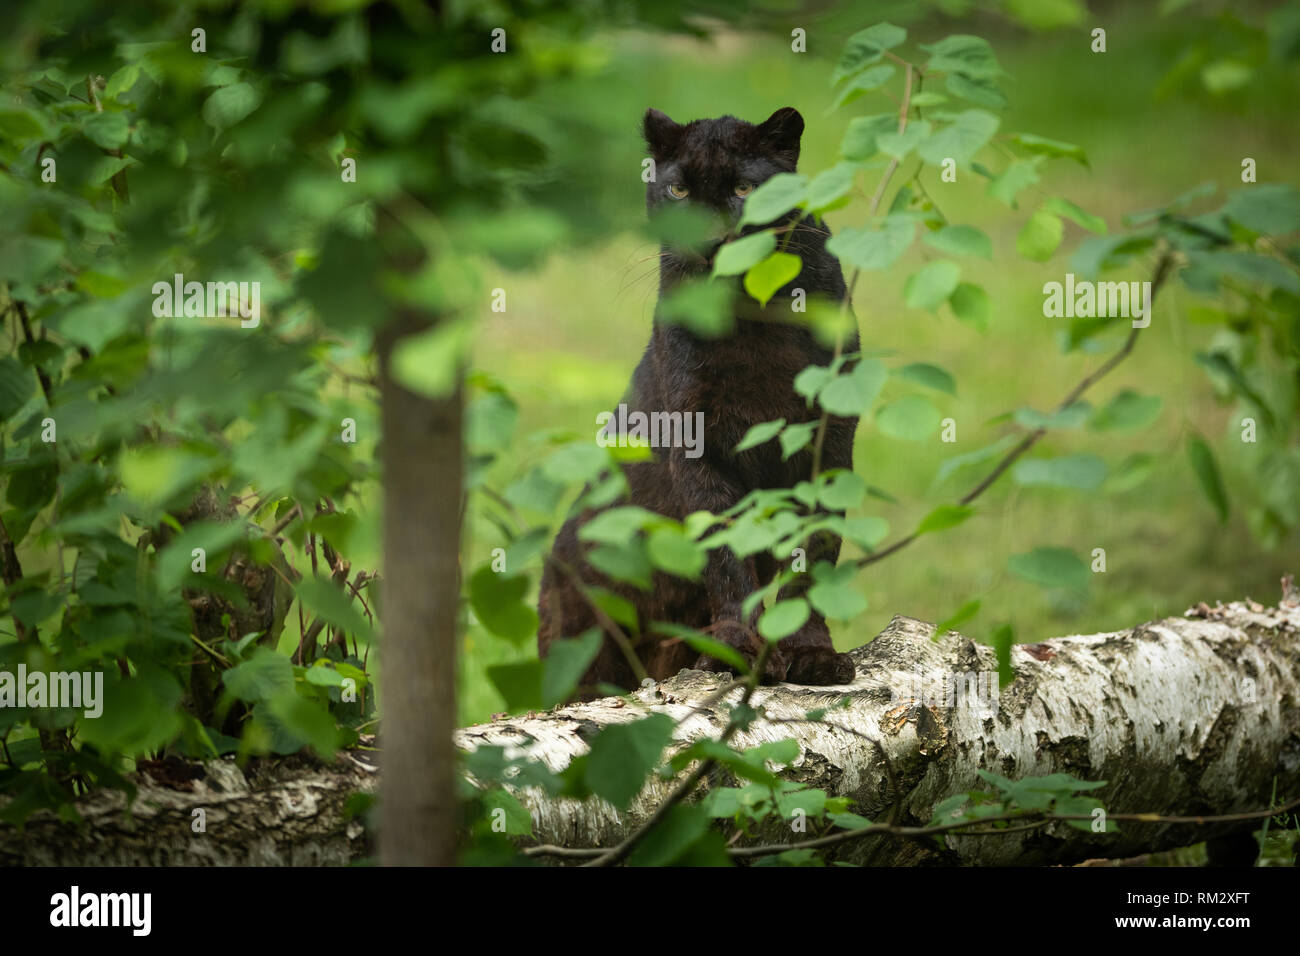 Black panther in the jungle - Stock Image